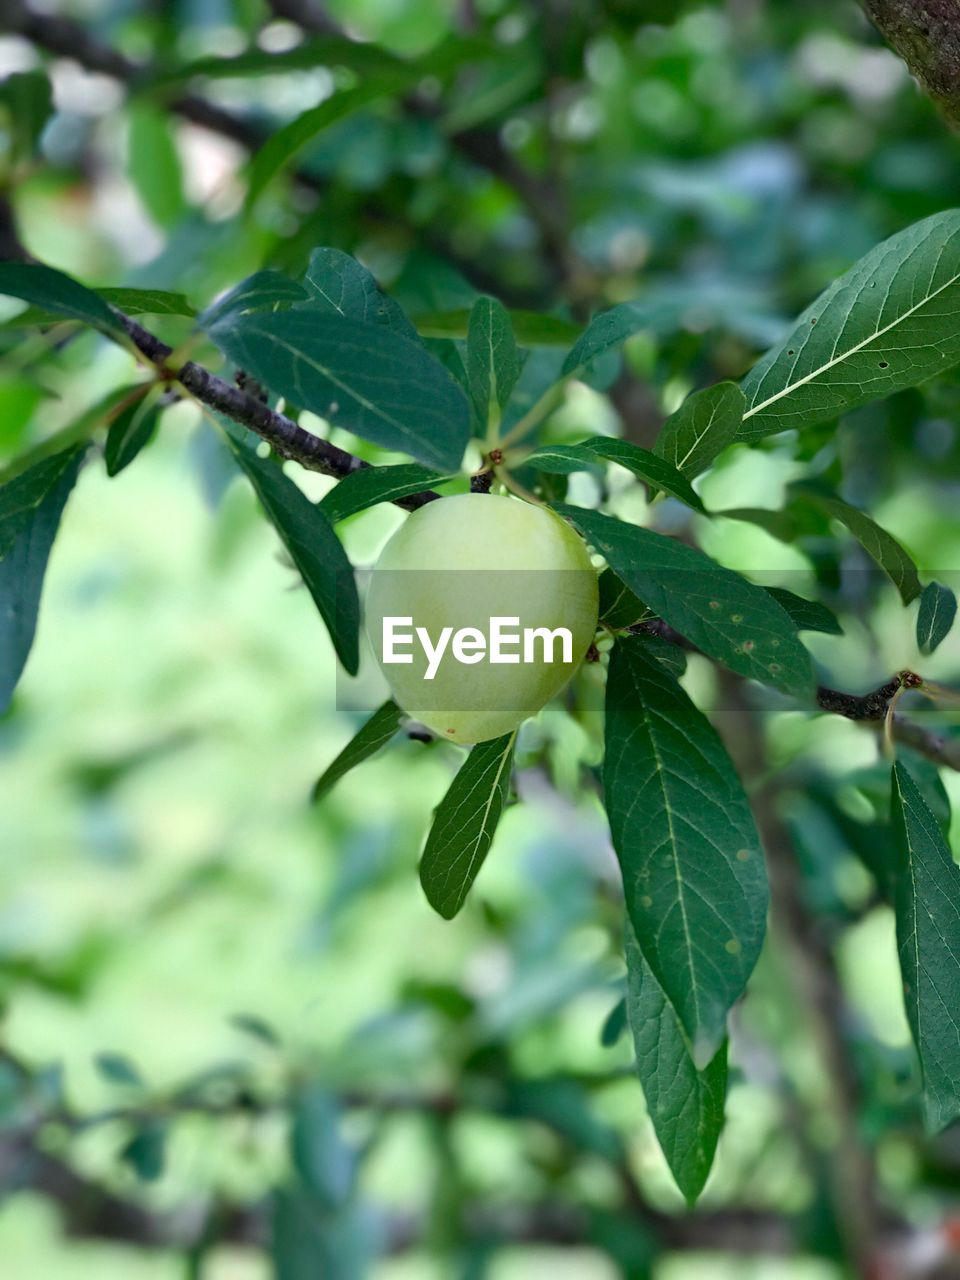 fruit, leaf, green color, food and drink, growth, food, tree, freshness, focus on foreground, nature, healthy eating, outdoors, day, branch, close-up, no people, beauty in nature